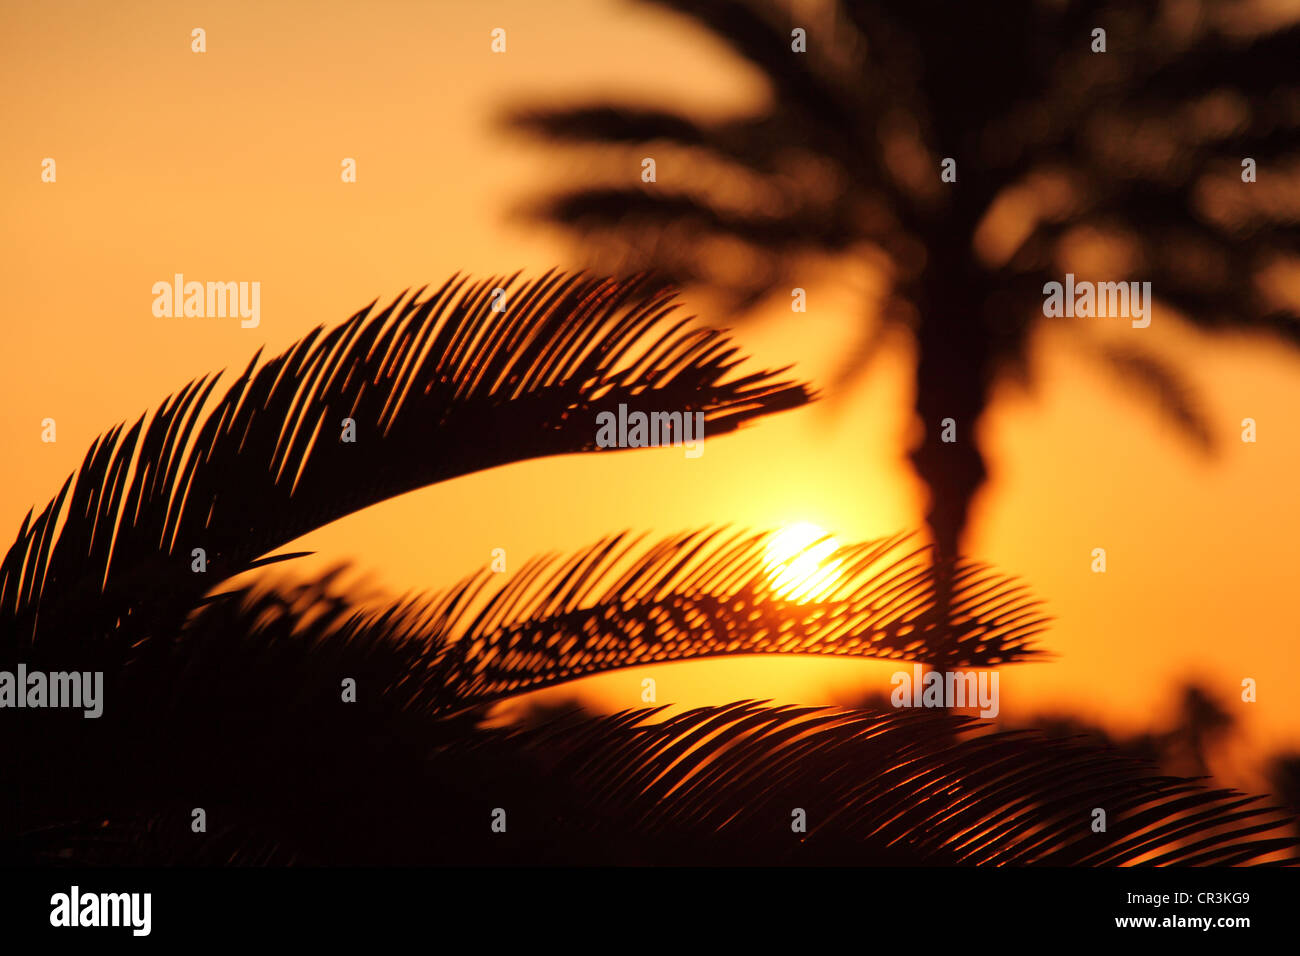 Palm Trees at Sunset - Stock Image